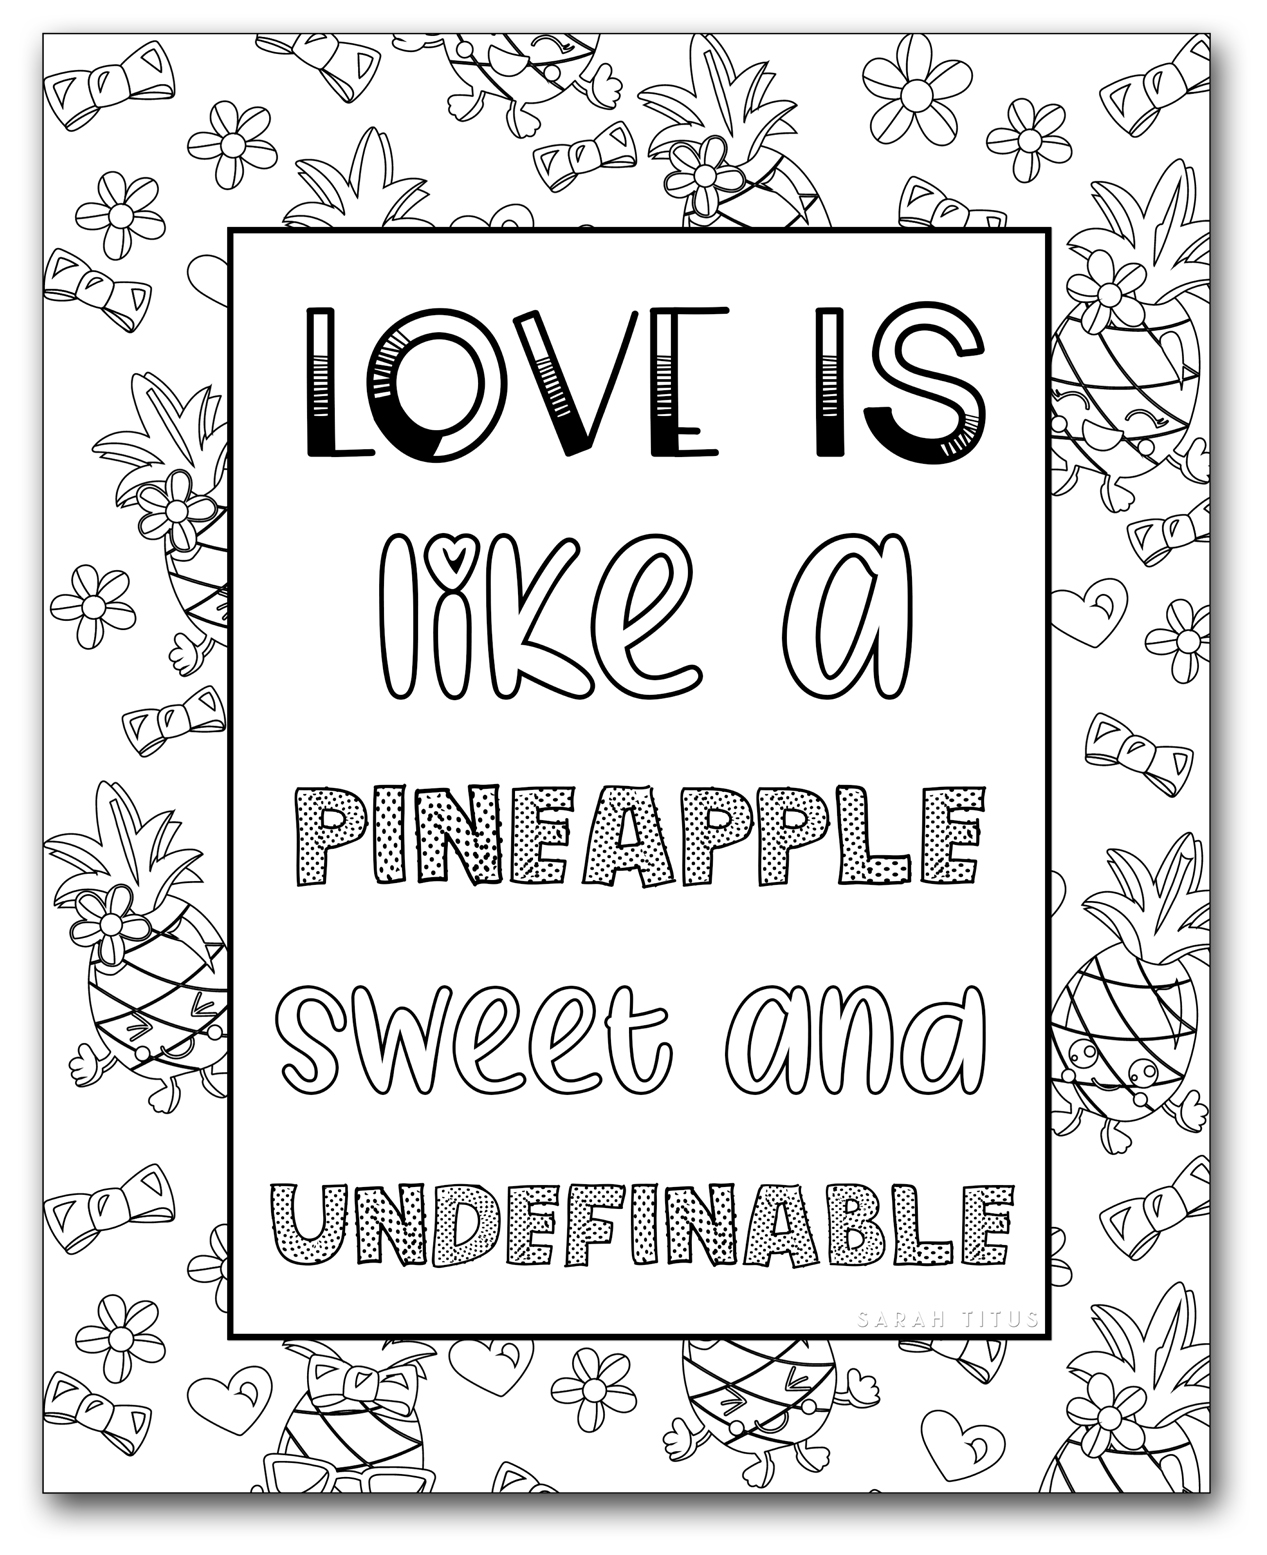 Printable Coloring Pages For Girls Sarah Titus